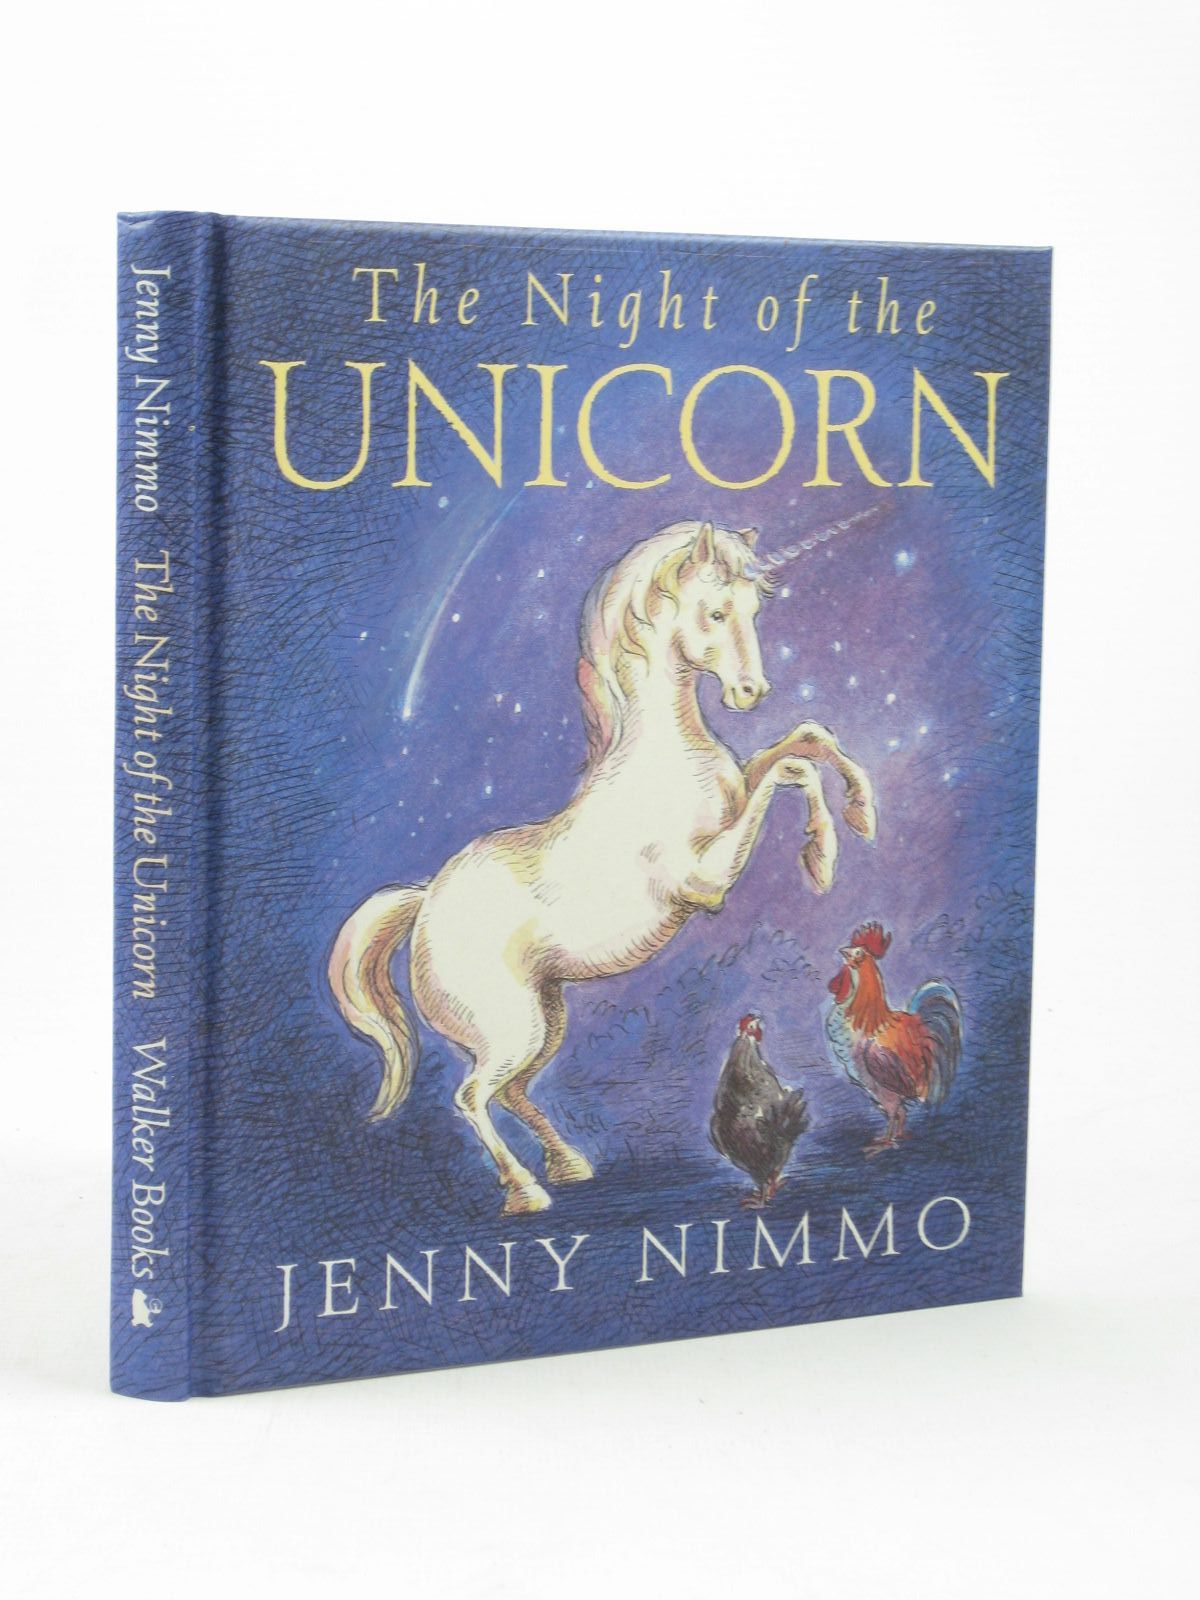 Photo of THE NIGHT OF THE UNICORN written by Nimmo, Jenny illustrated by Milne, Terry published by Walker Books (STOCK CODE: 1312625)  for sale by Stella & Rose's Books